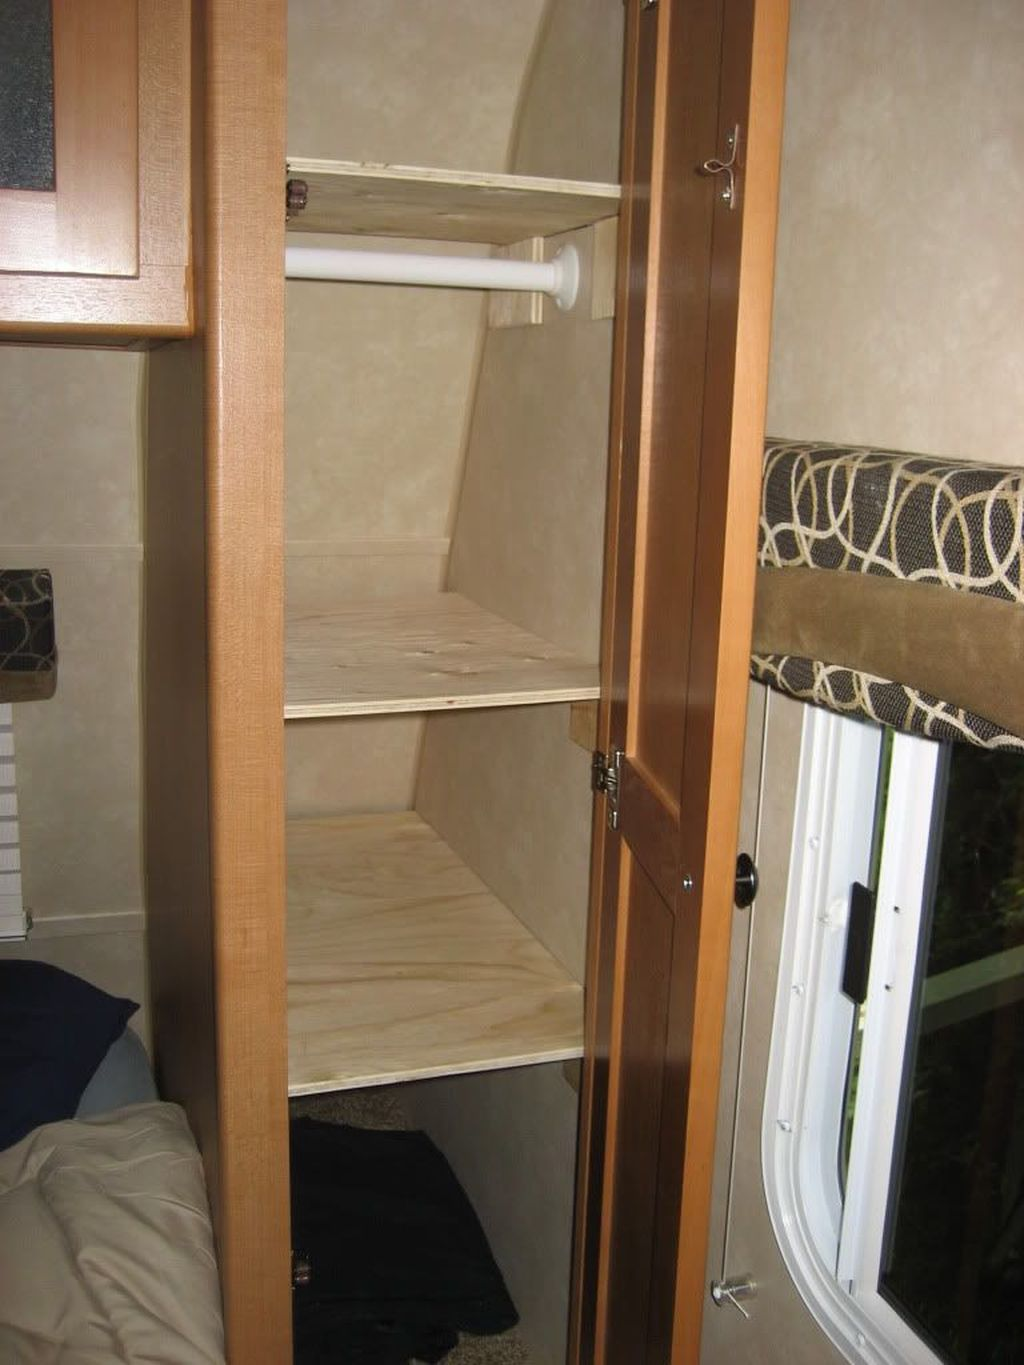 Inspiring RV Storage Ideas Travel Trailers 26